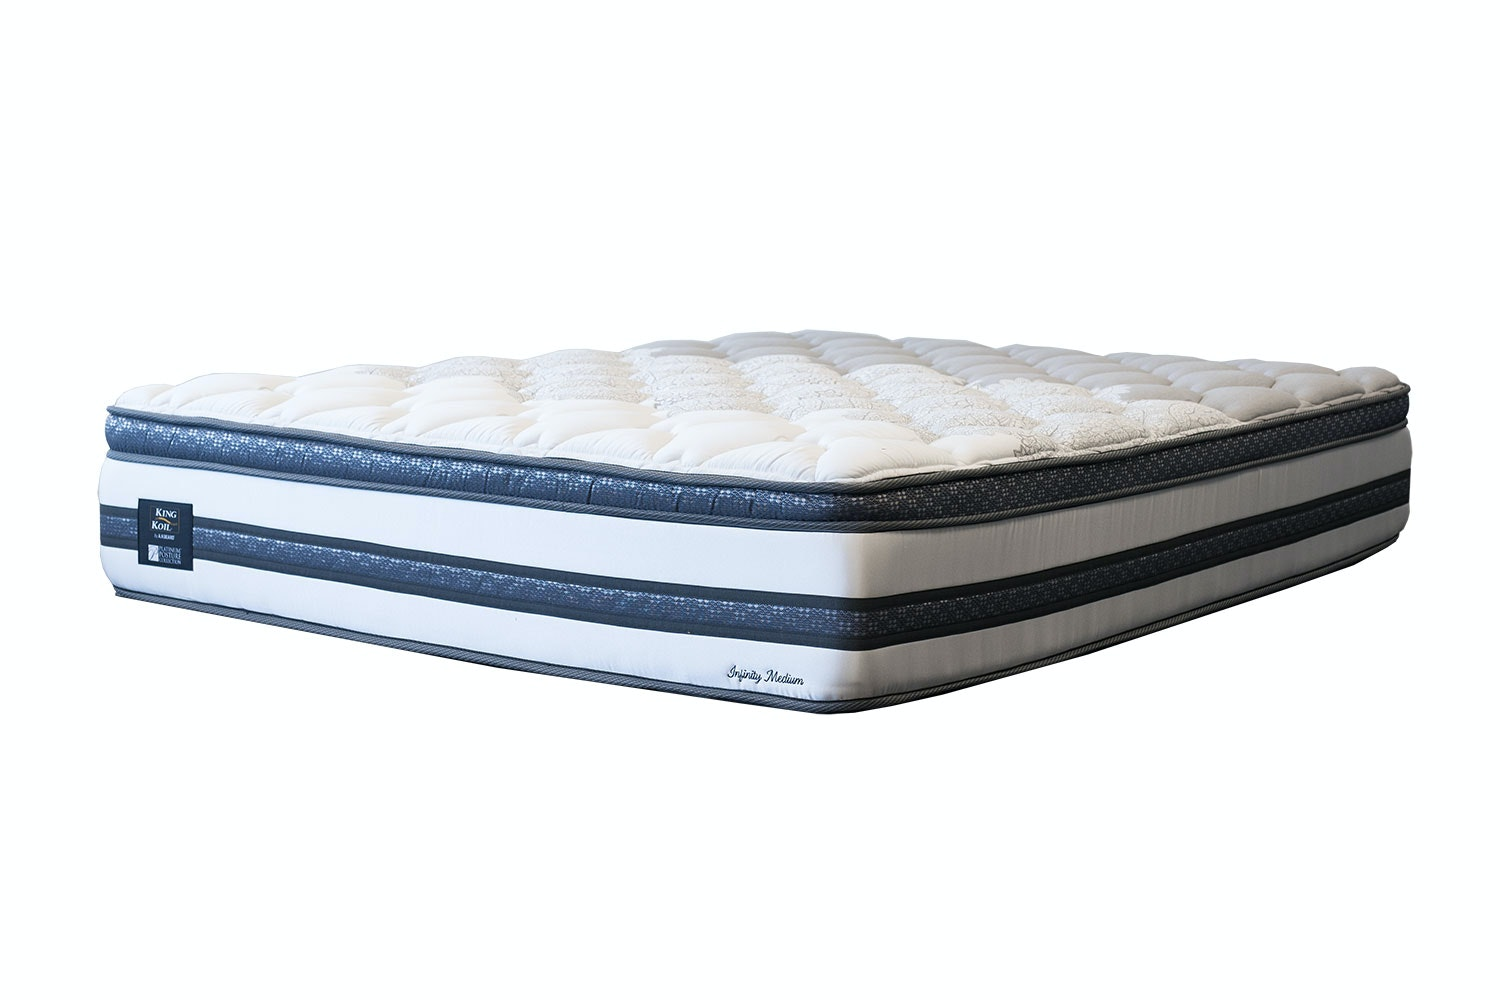 Infinity Medium King Mattress by King Koil